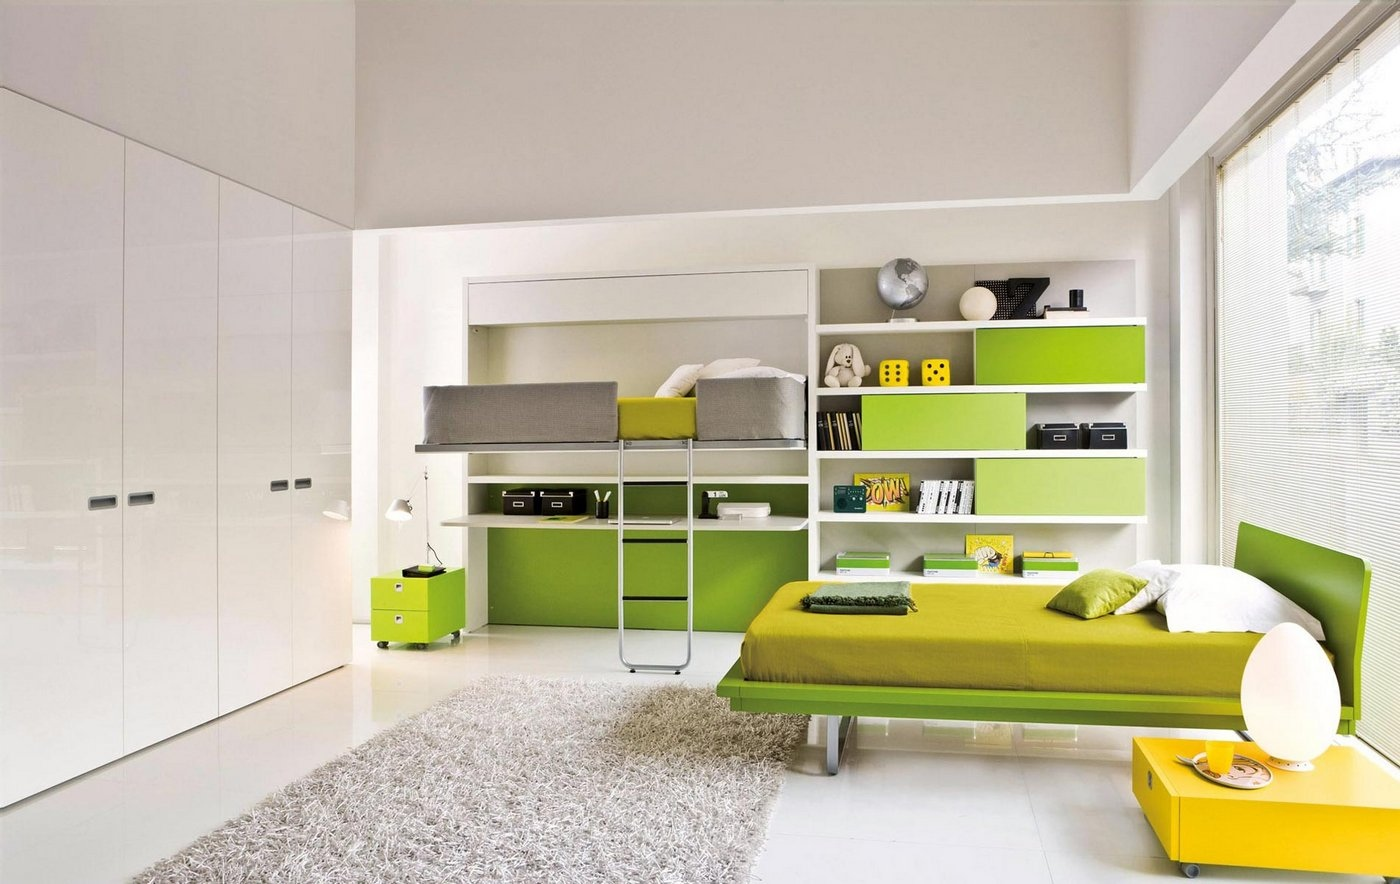 bedroom wall bed space saving furniture ikea transformable space saving kids rooms bedding bedroom wall bed space saving furniture